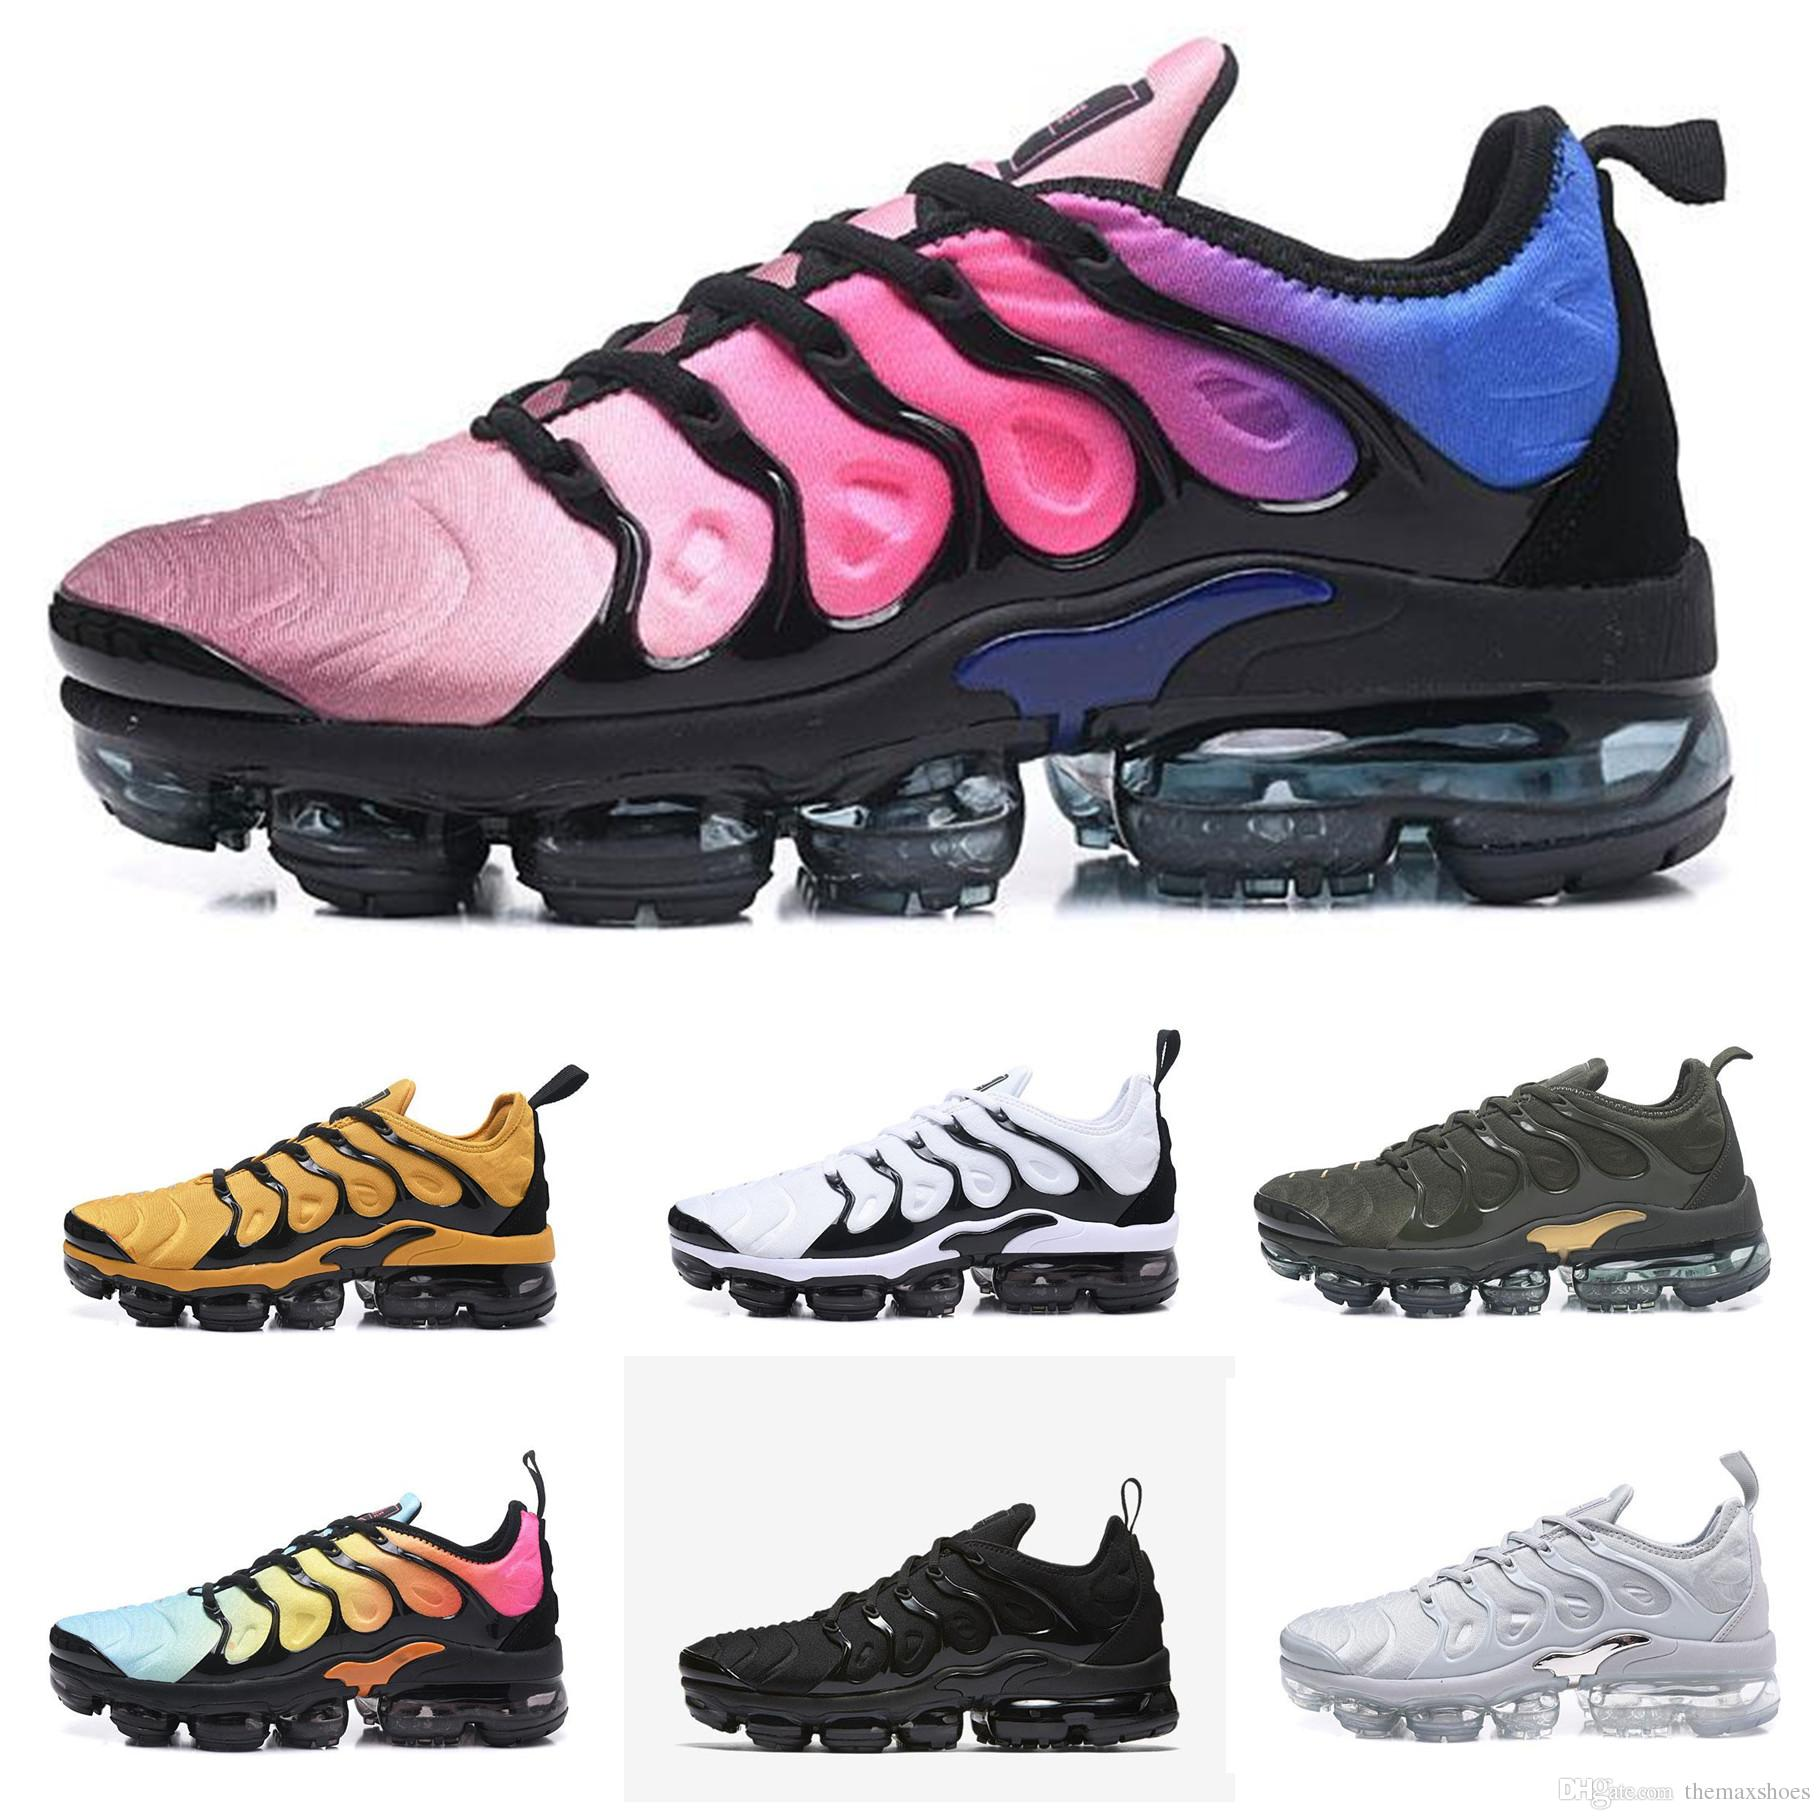 clearance store for sale Vapormax TN Plus VM Airs Shoes Men Running Shoes Metallic Rainbow Athletic Sport Sneakers Fashion Gradient Outdoor West Boost Design Shoes outlet best clearance supply fake cheap online buy cheap low price fee shipping RjWLhE